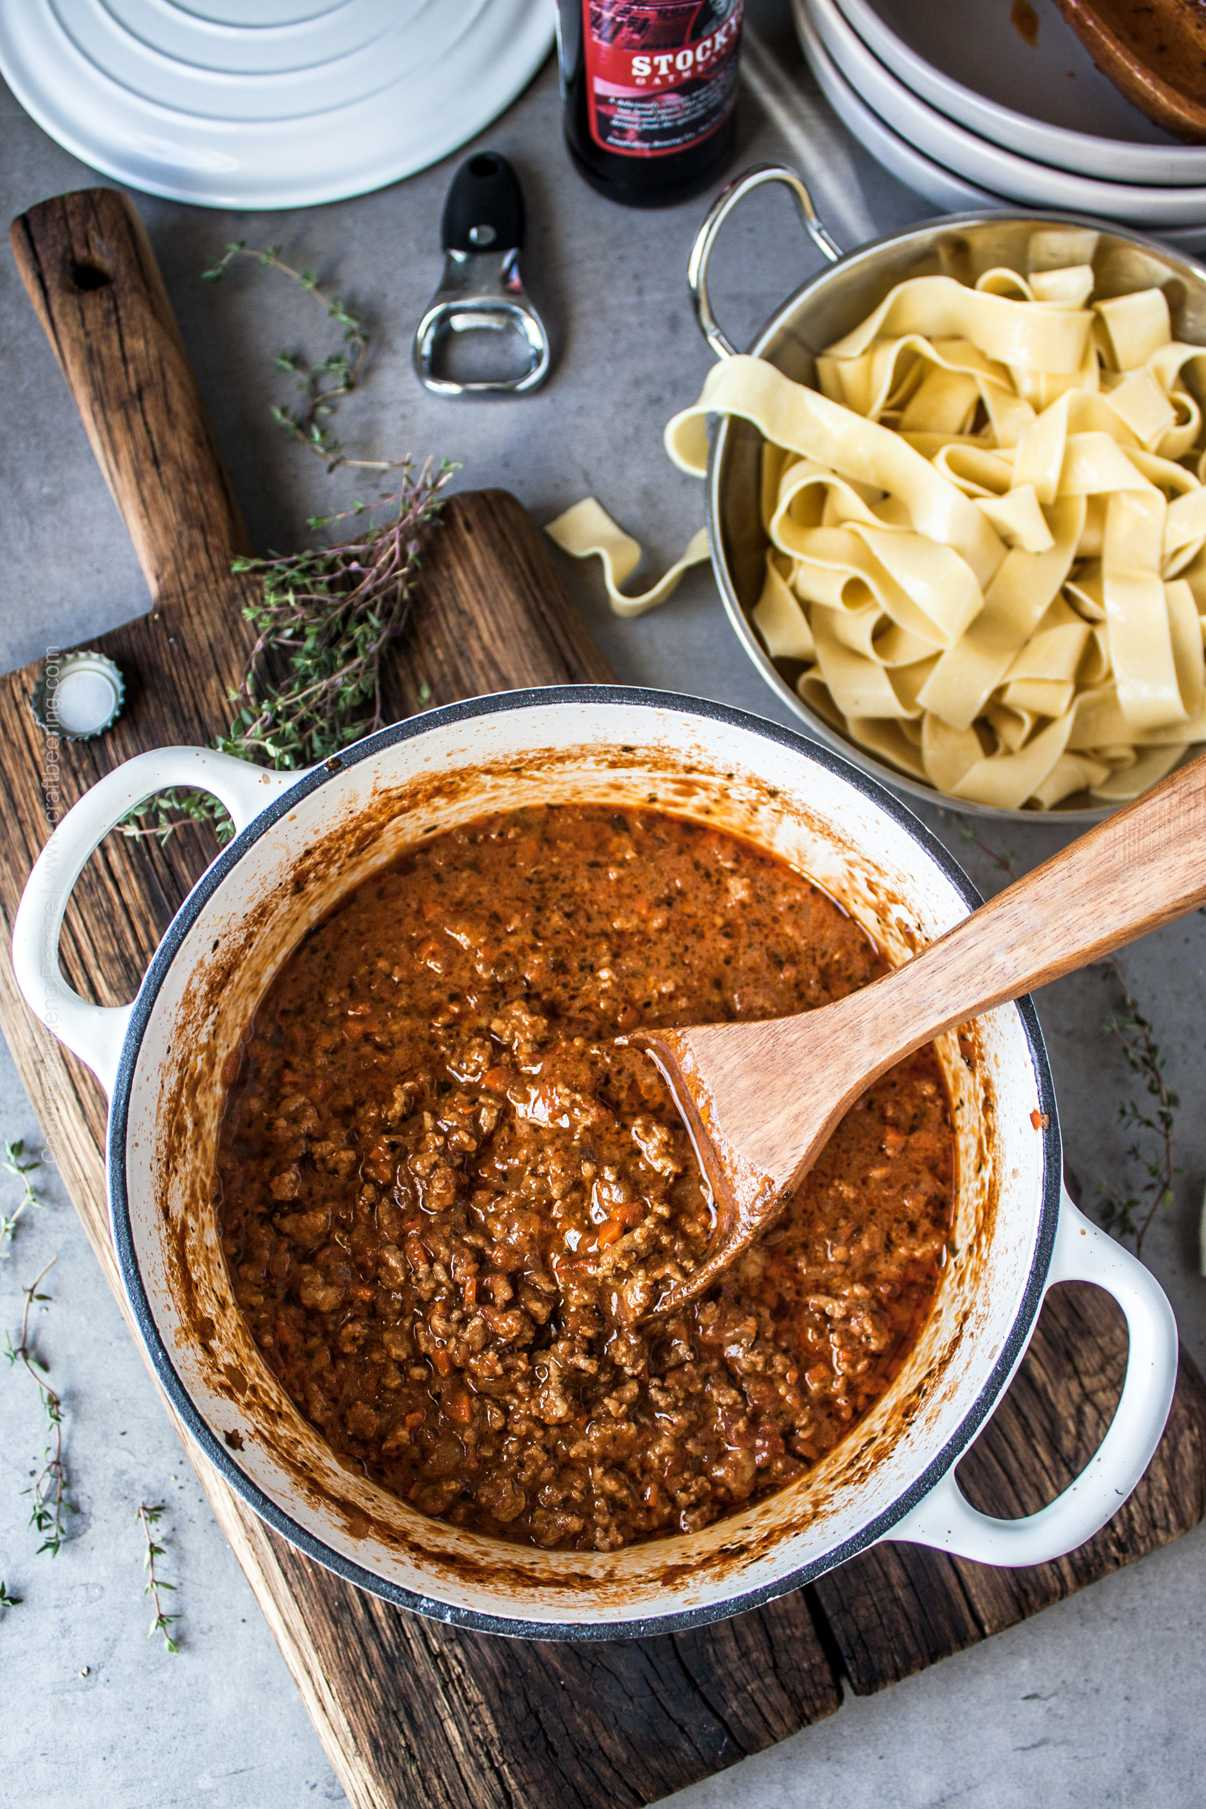 Hearty ground meat sauce with beef and roasty notes from stout.